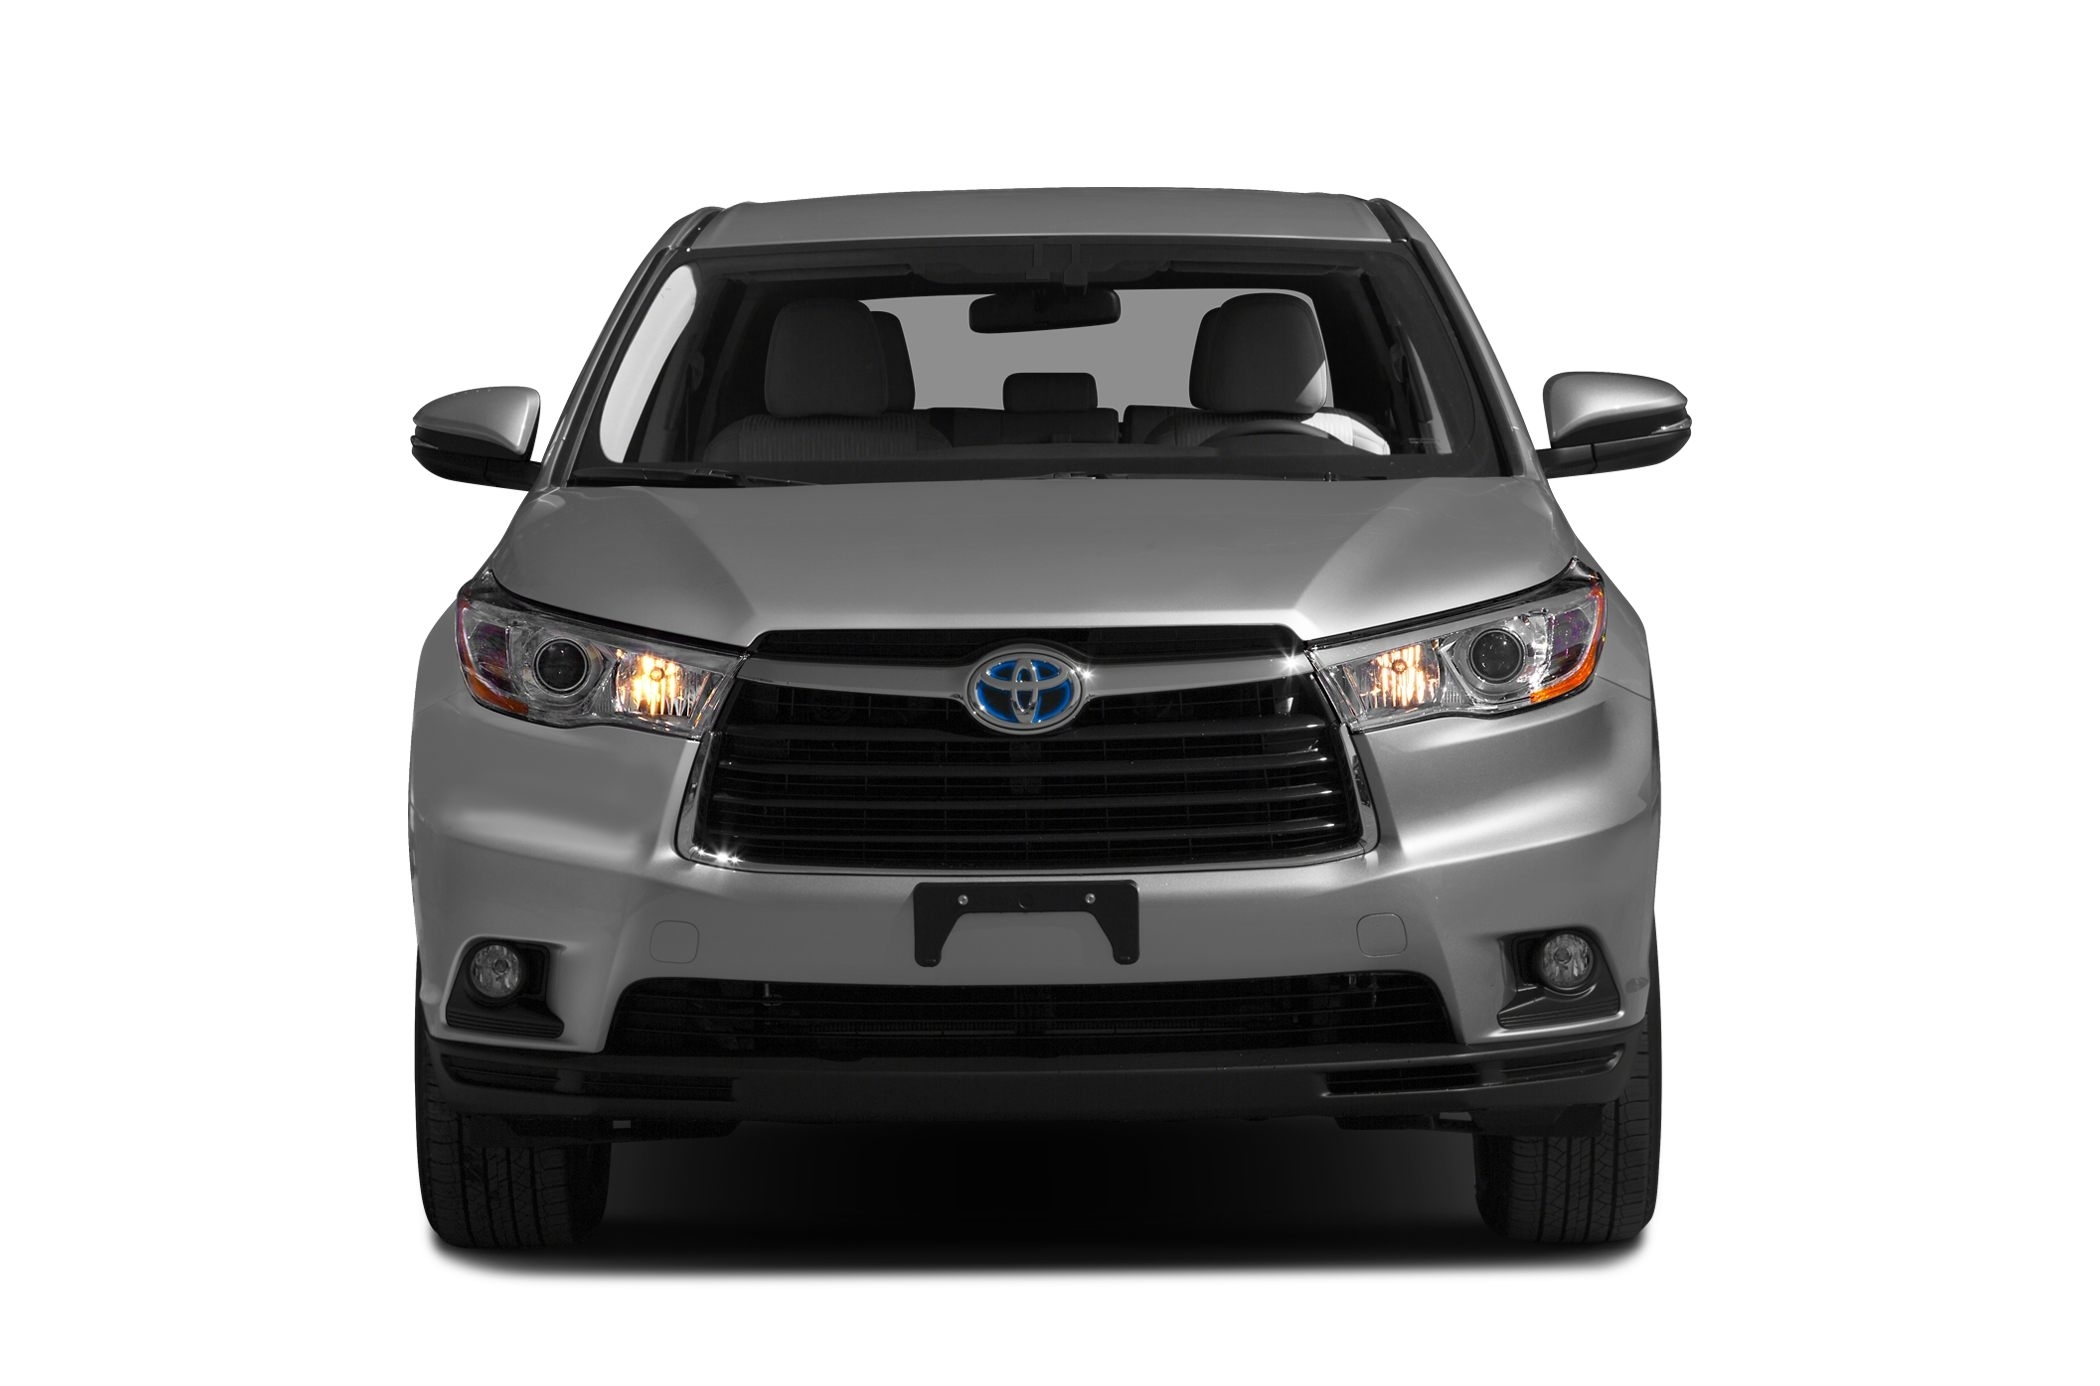 2015 highlander invoice price invoice template free 2016 2015 toyota highlander invoice price